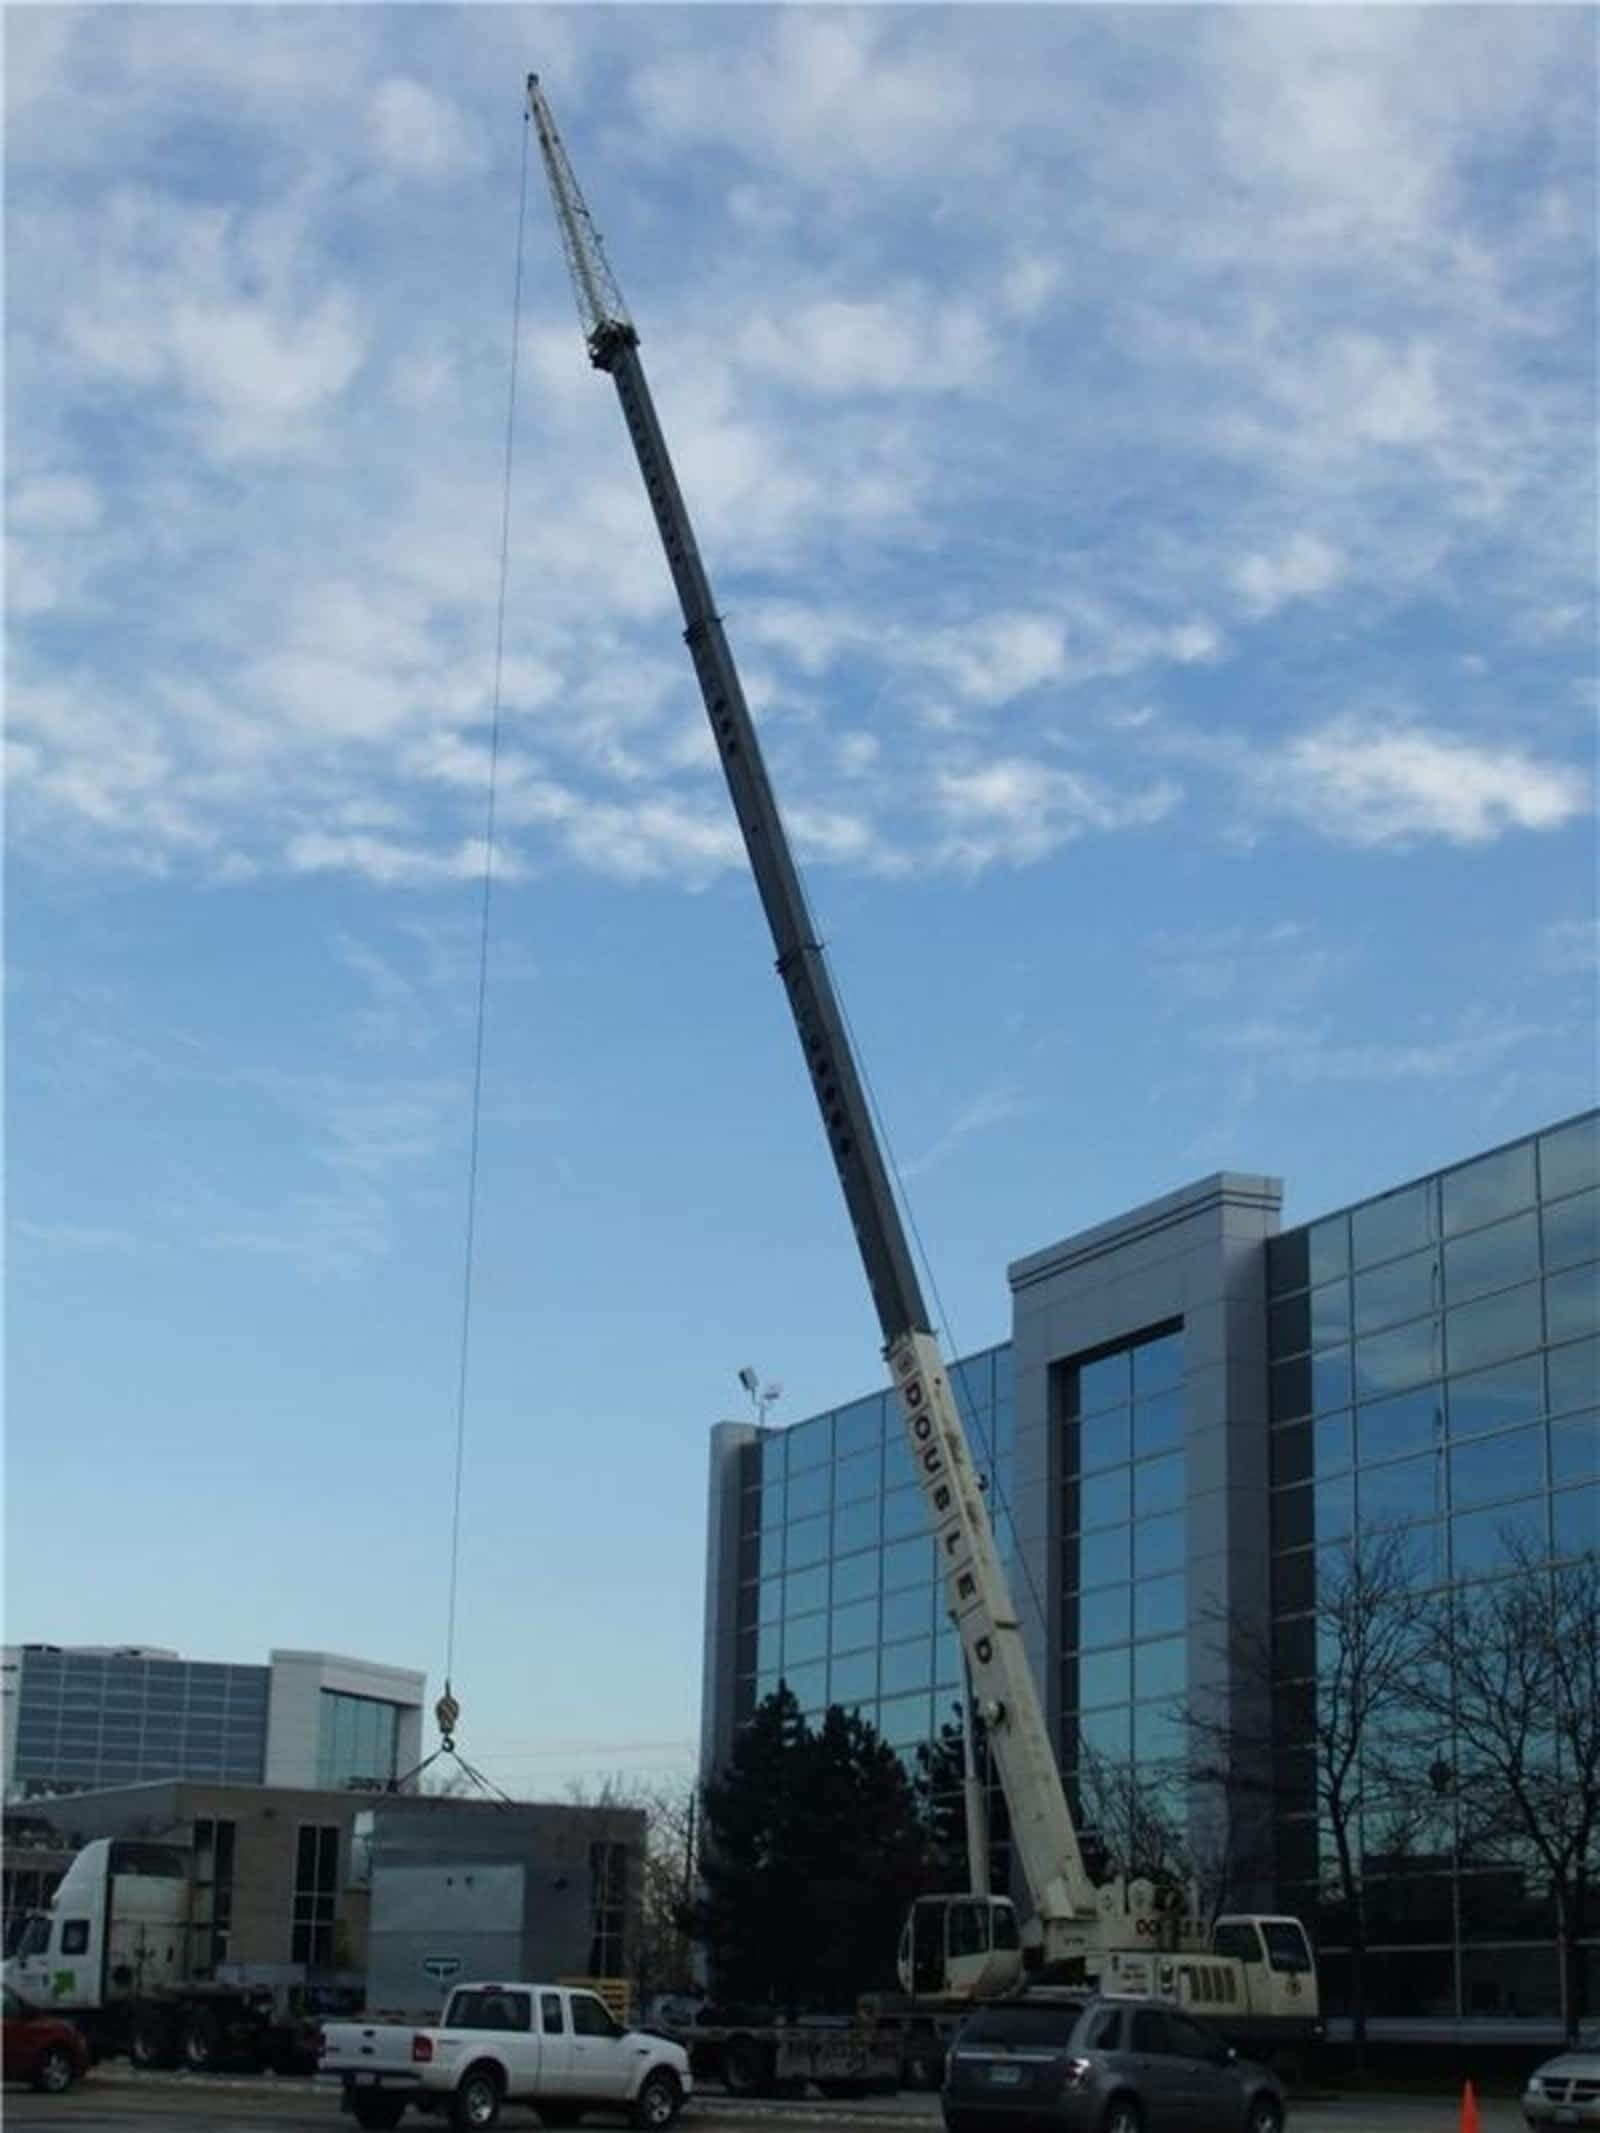 view of a crane lifting a heavy object